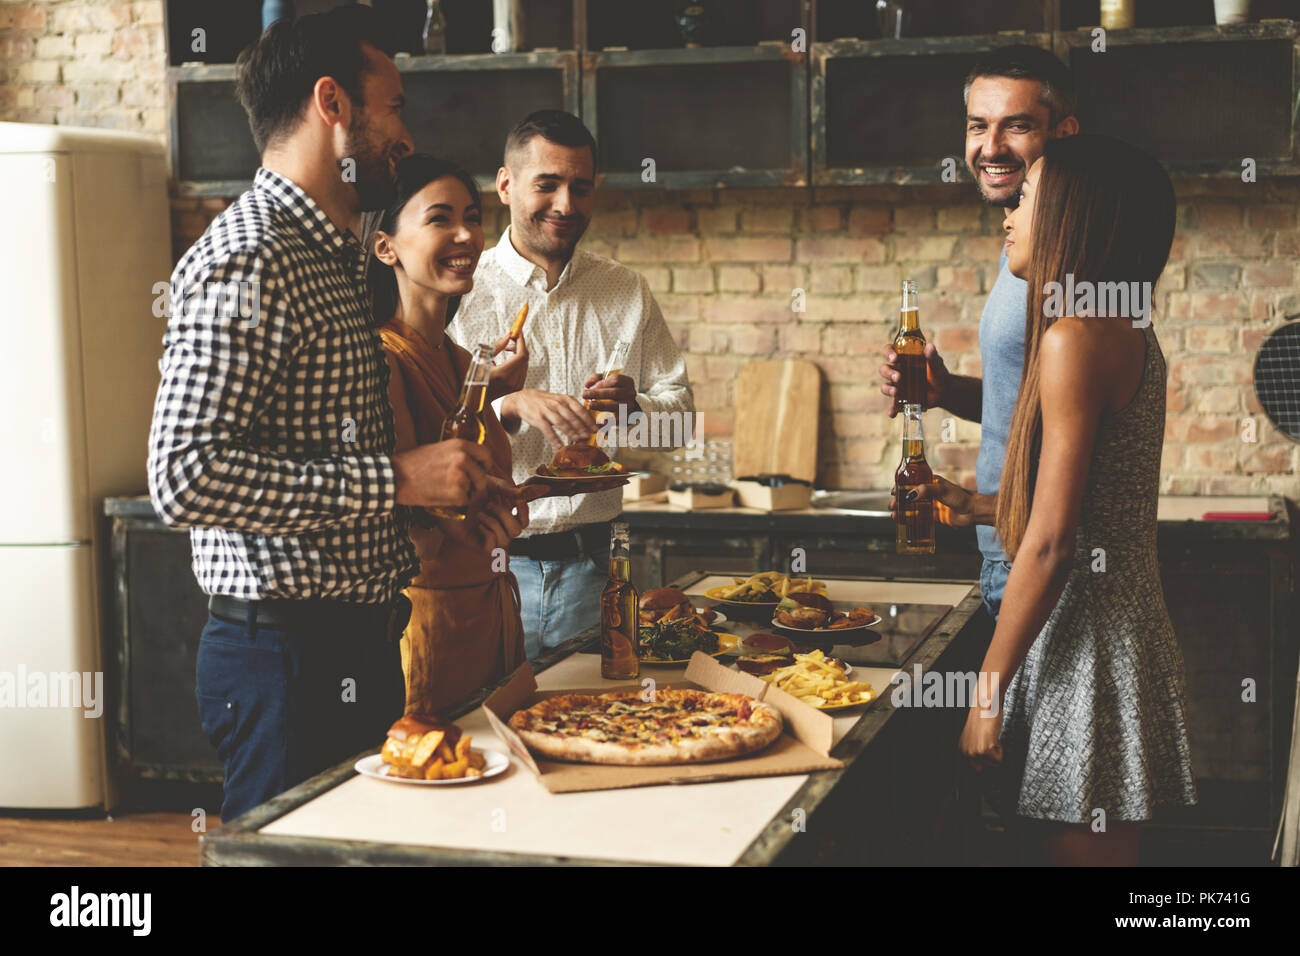 Home party. Full length of cheerful young people enjoying home party while communicating and eating snacks on the kitchen. - Stock Image